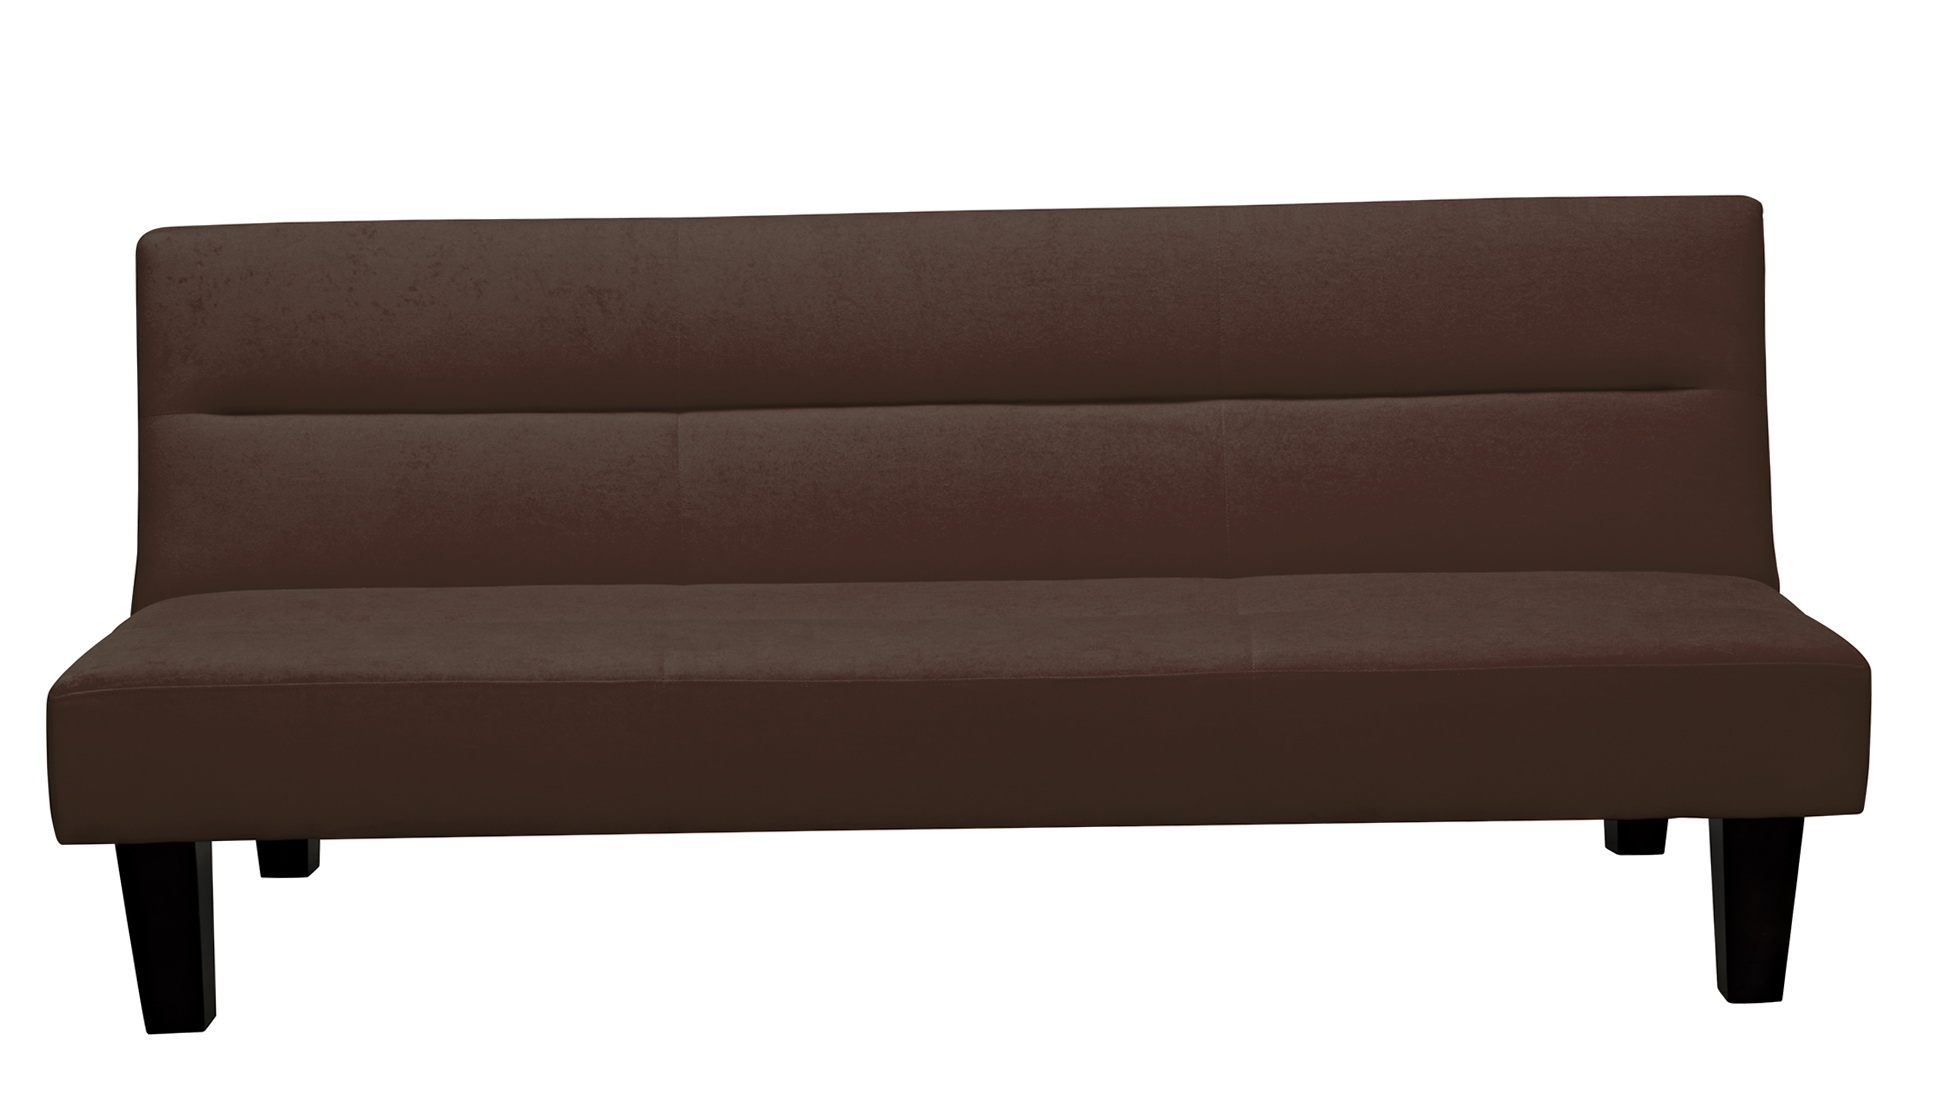 Kebo Futon Sofa Bed Weight Limit